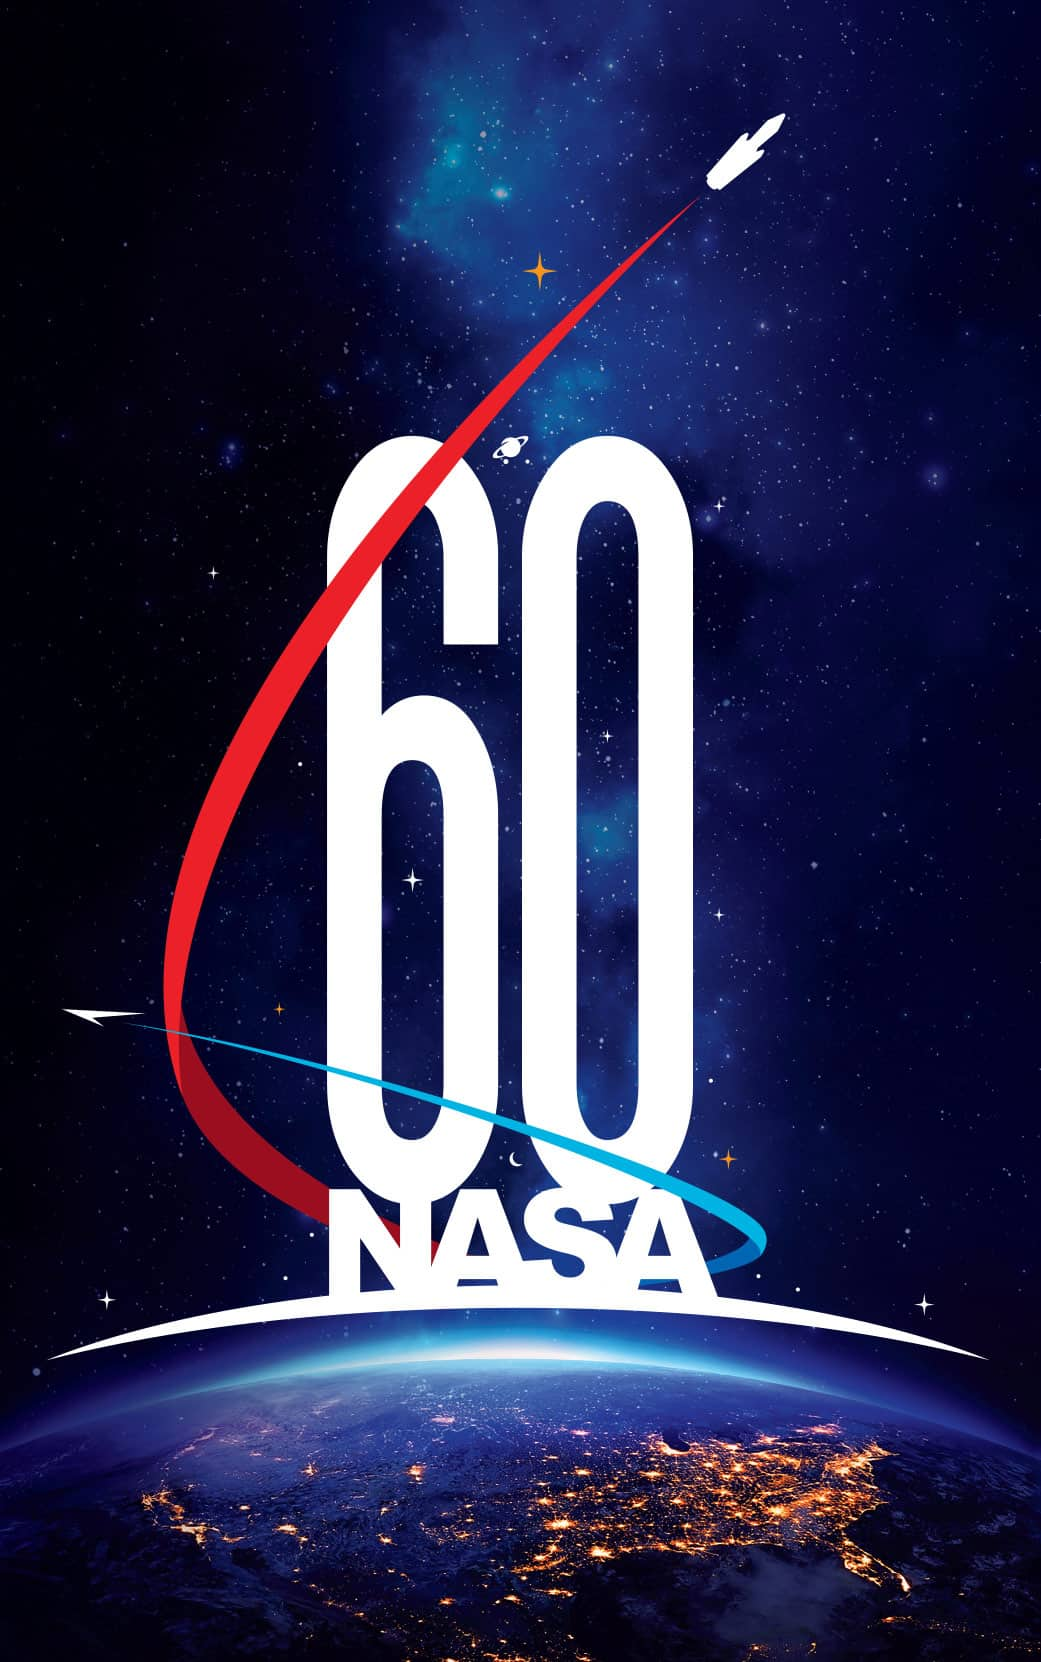 NASA Releases Logo For Upcoming 60th Anniversary Designed by Matthew Skeins